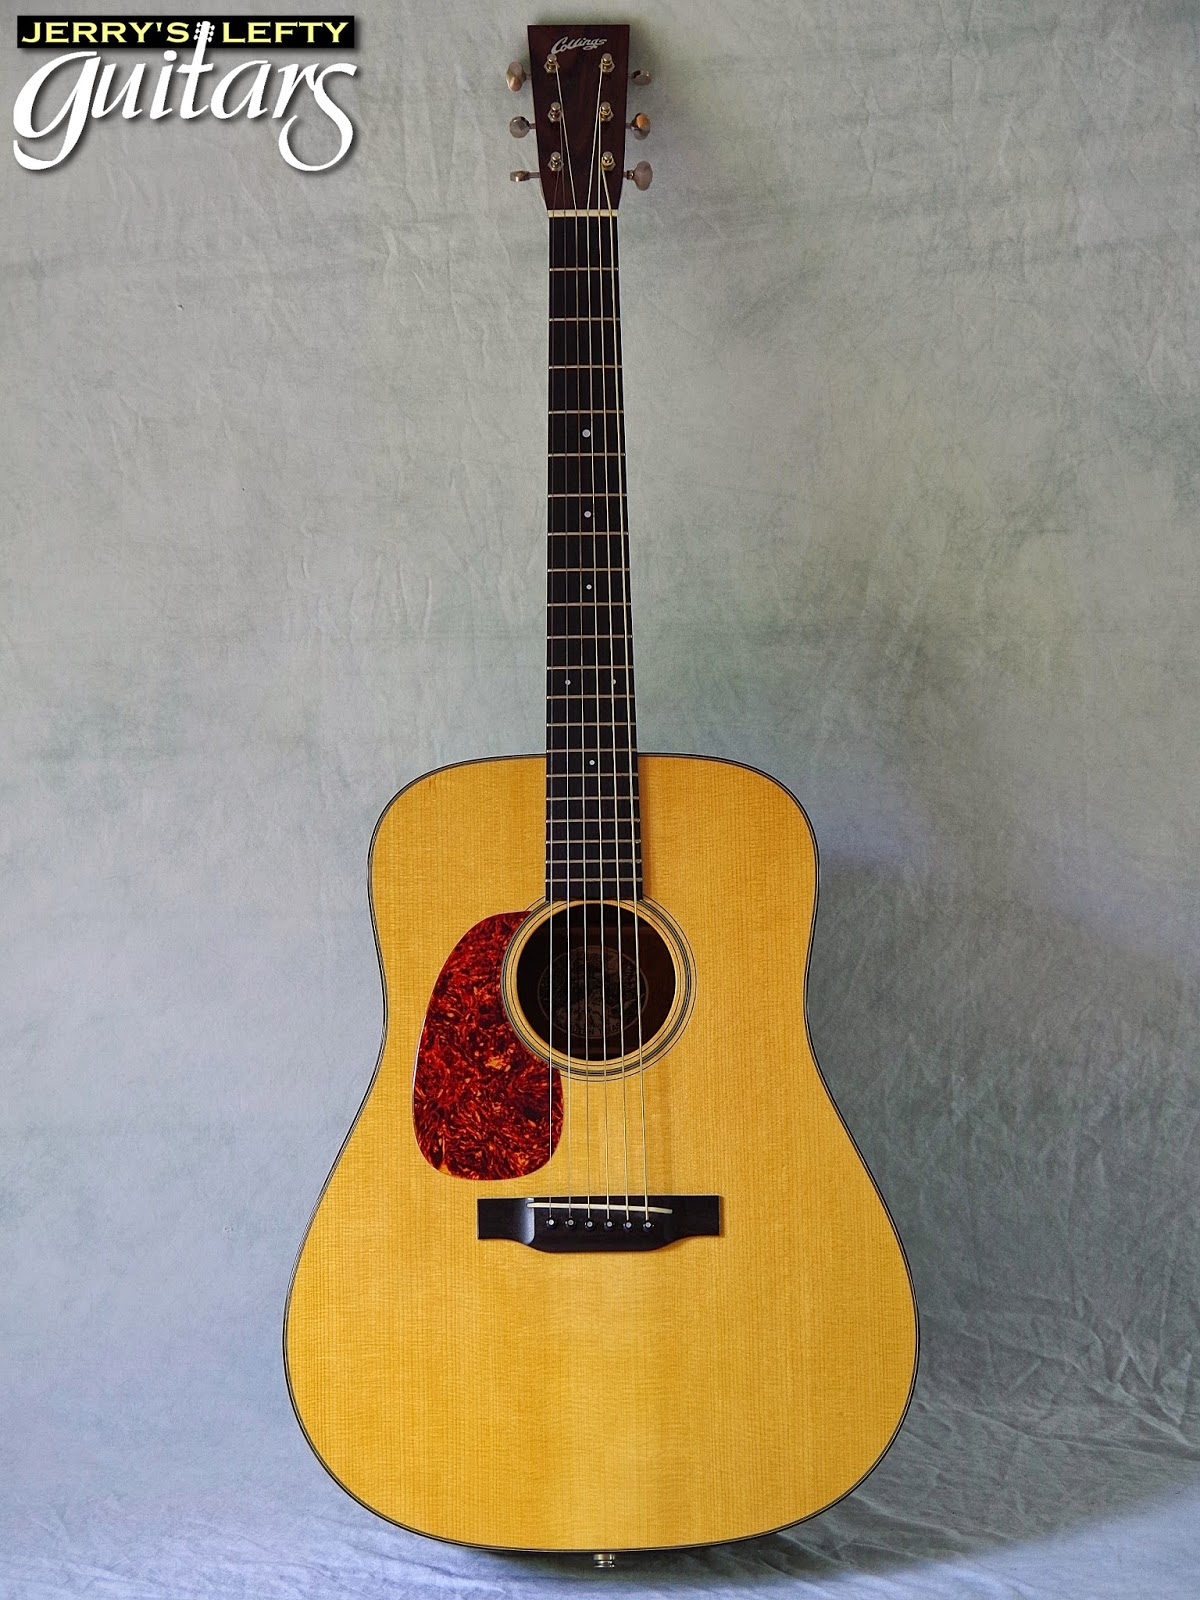 jerry 39 s lefty guitars newest guitar arrivals updated weekly collings d1a used left handed. Black Bedroom Furniture Sets. Home Design Ideas